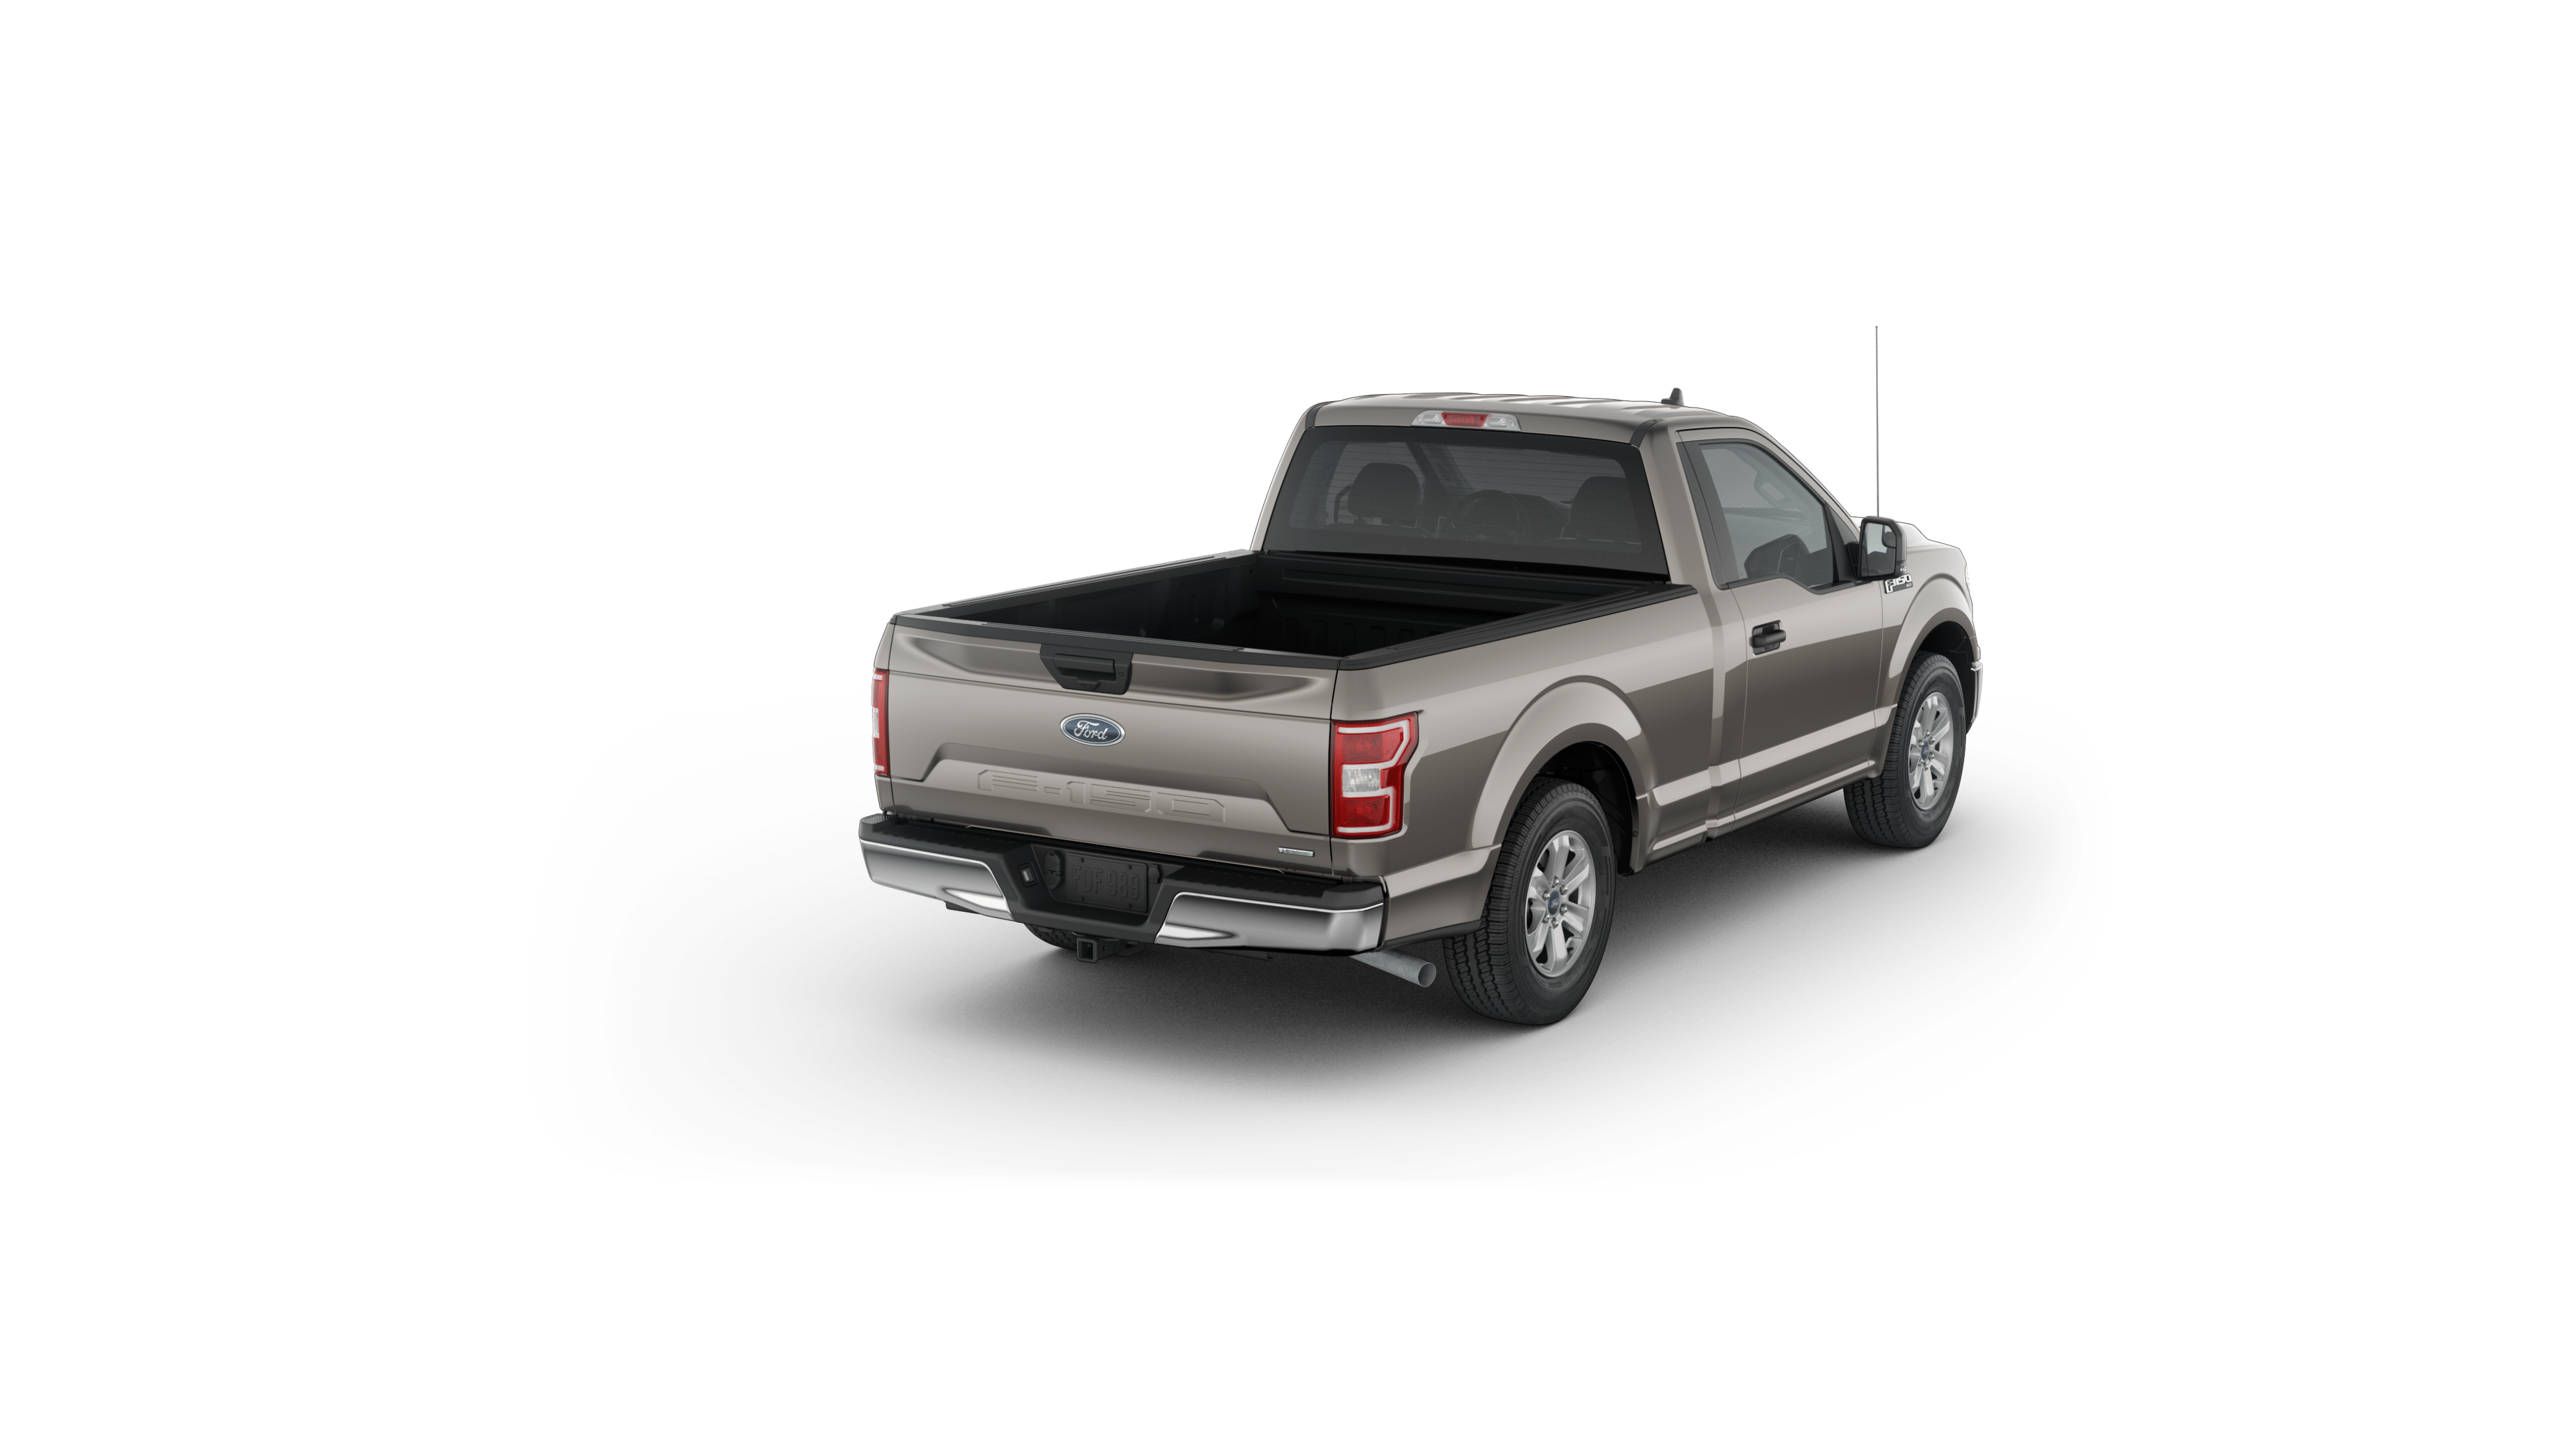 2019 Ford F-150 for sale in Jacksonville - 9JT6249 ...